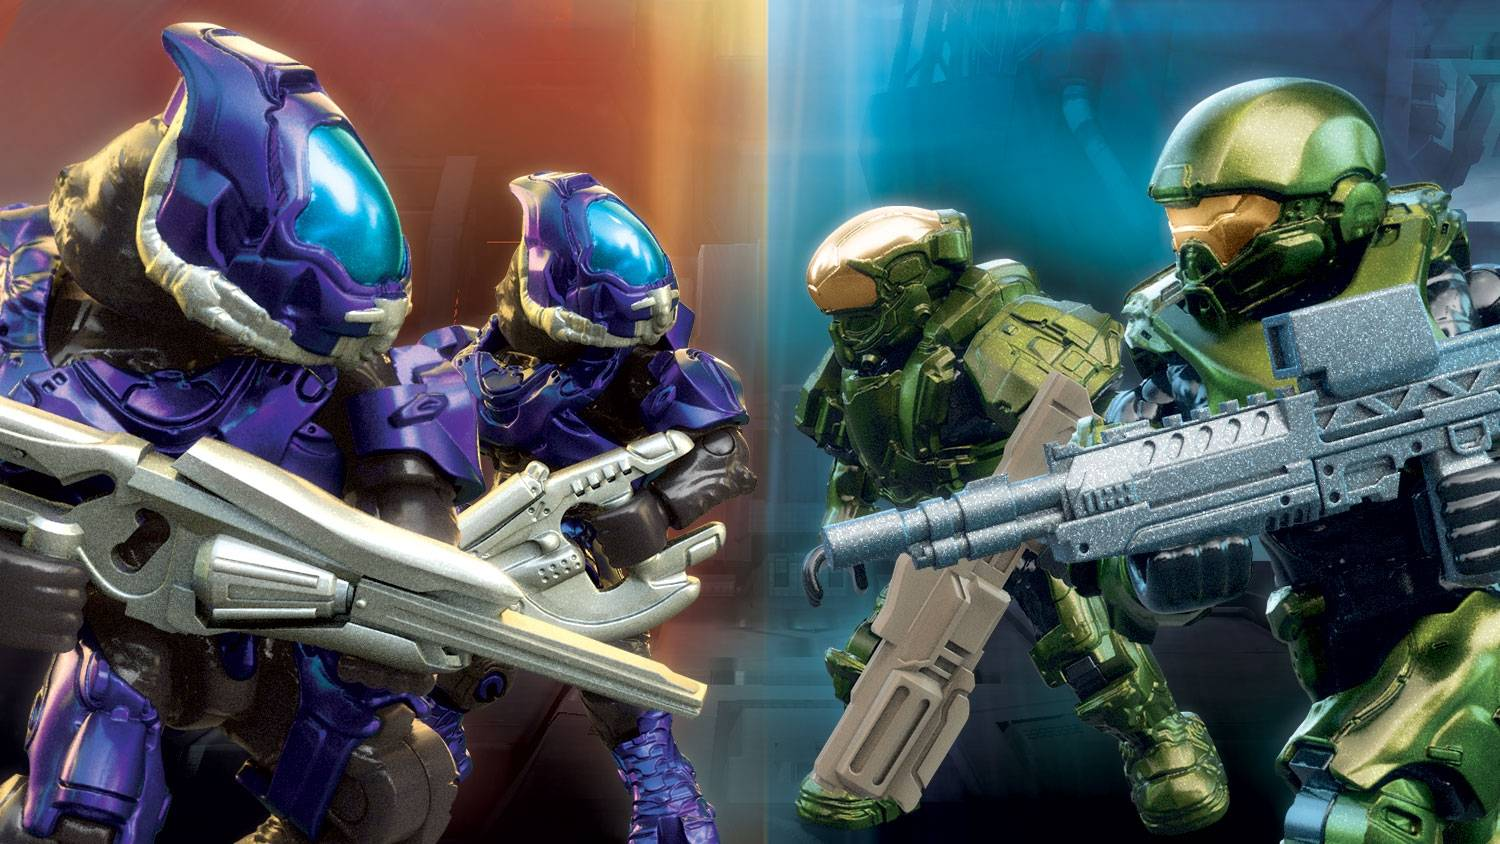 Image of: Spartan-IV Team Battle